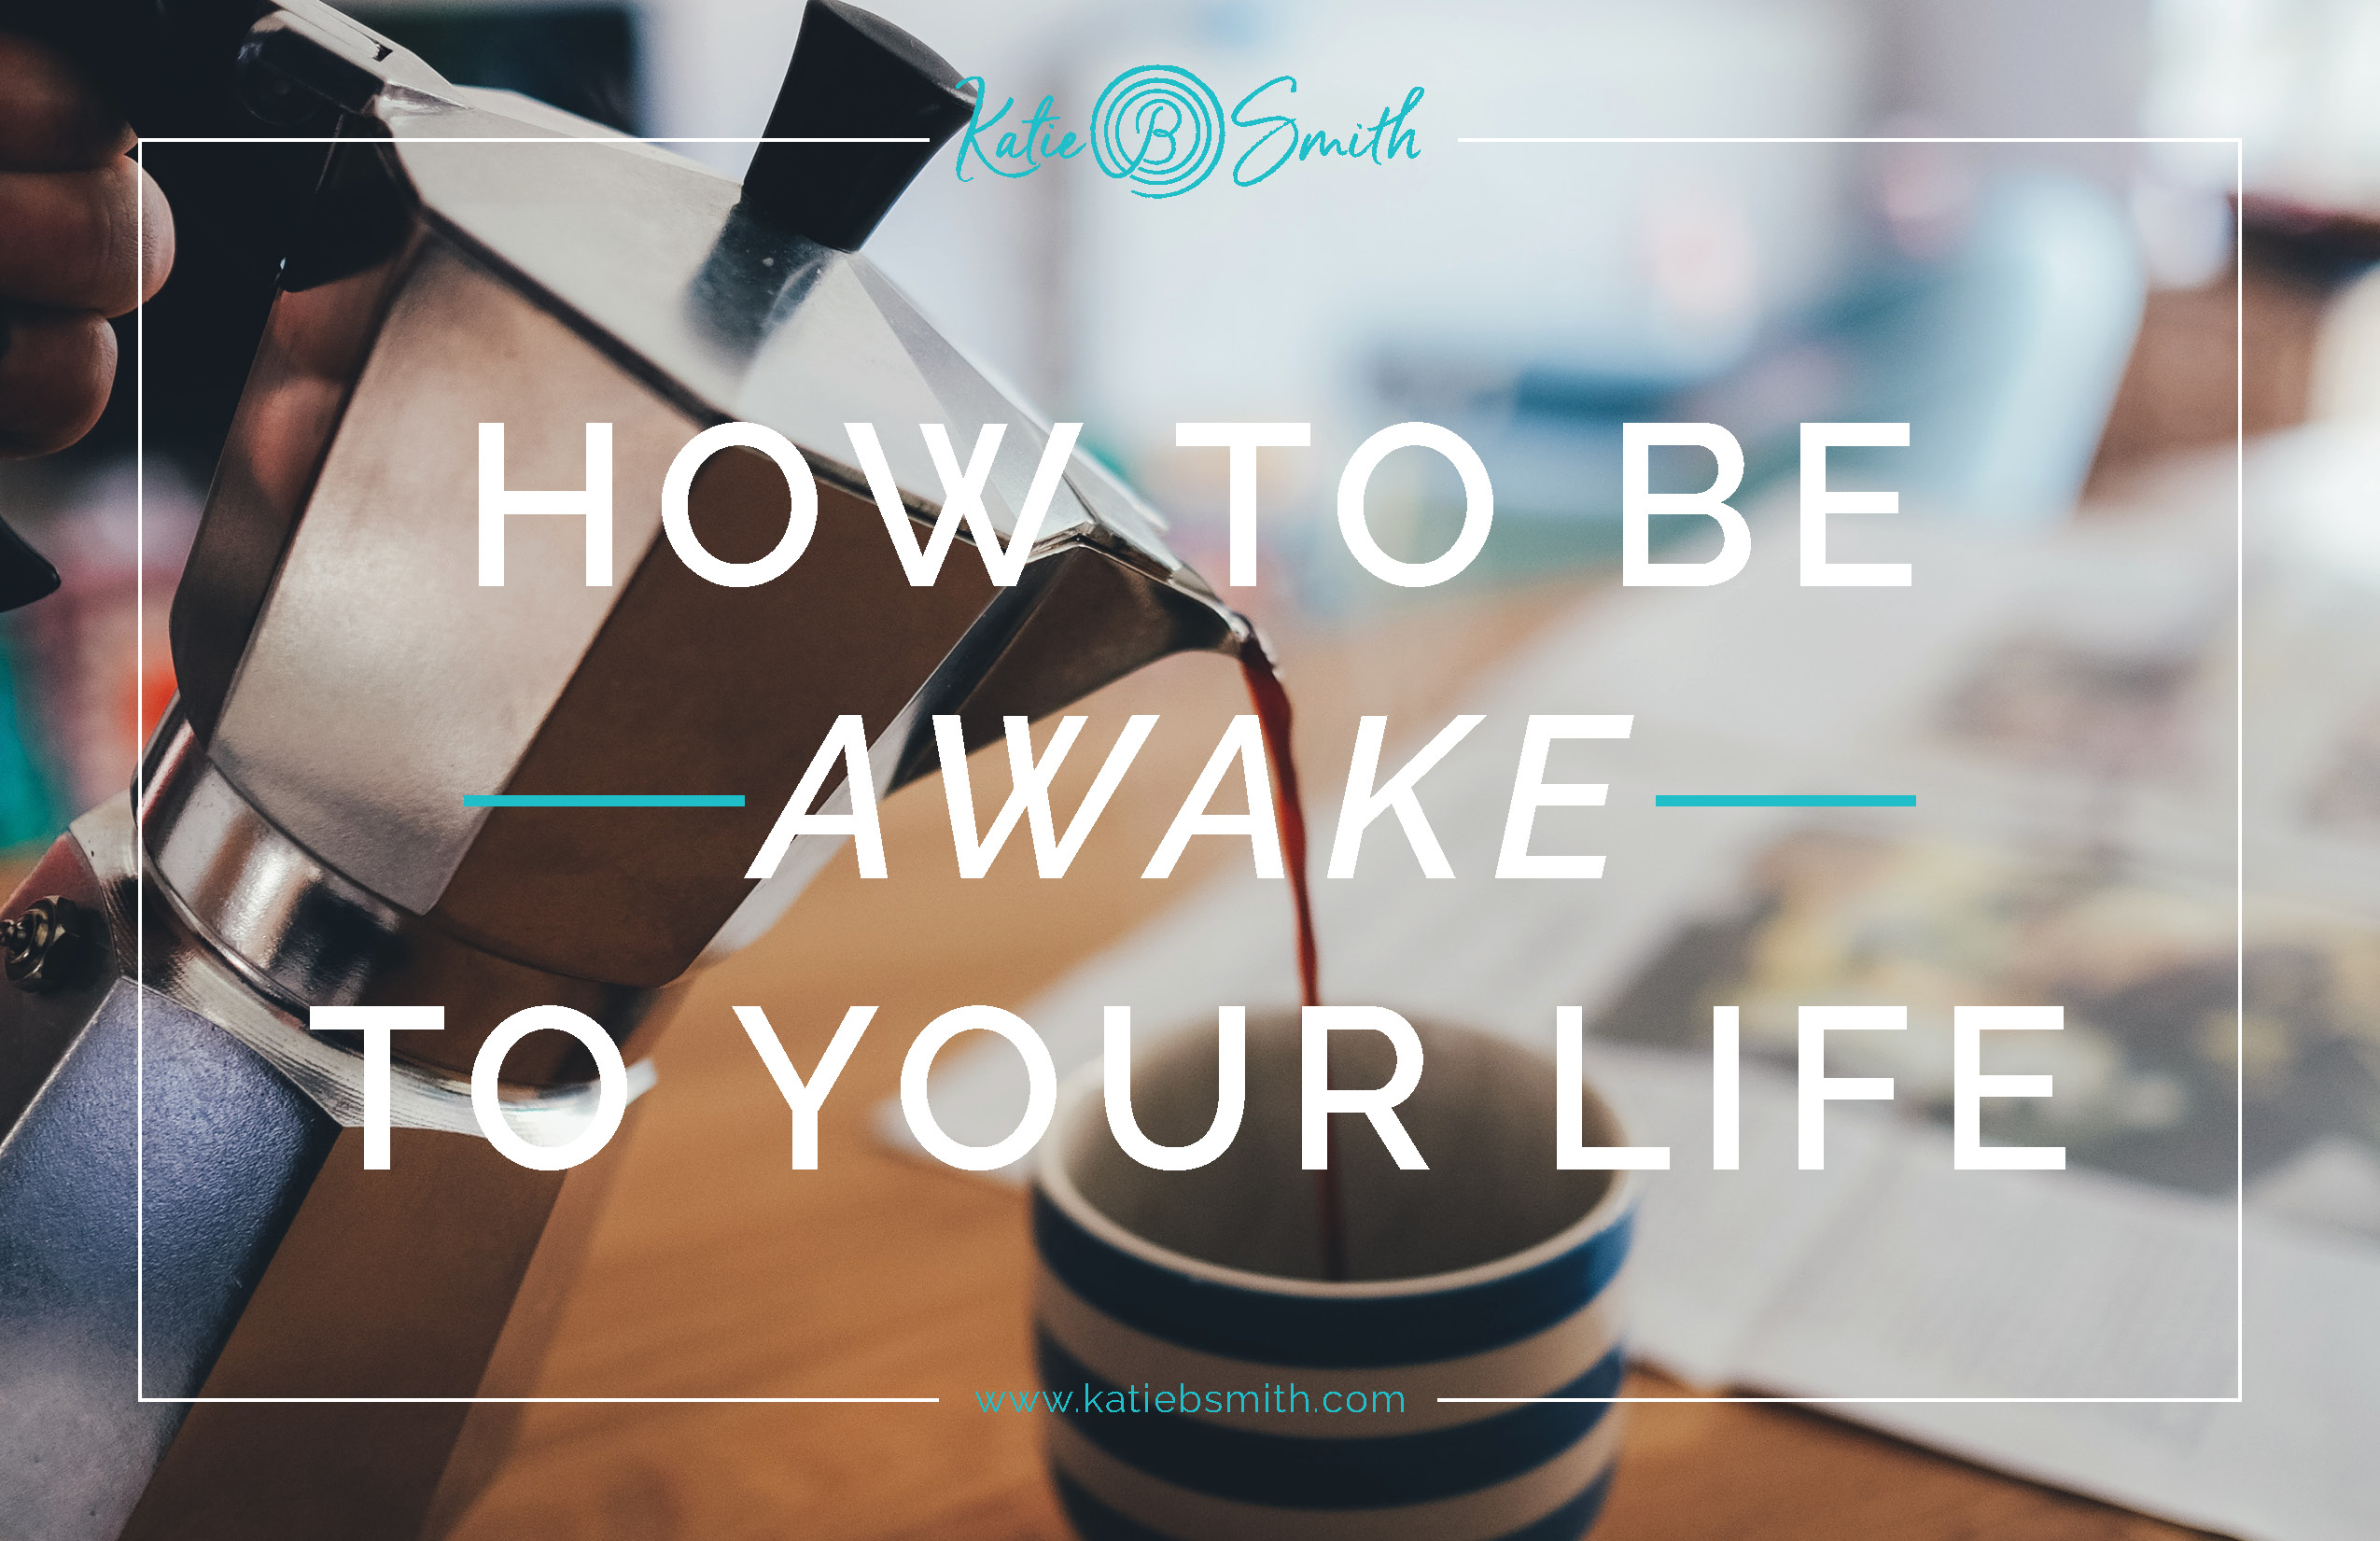 How to Be Awake to Your Life - Katie B. Smith